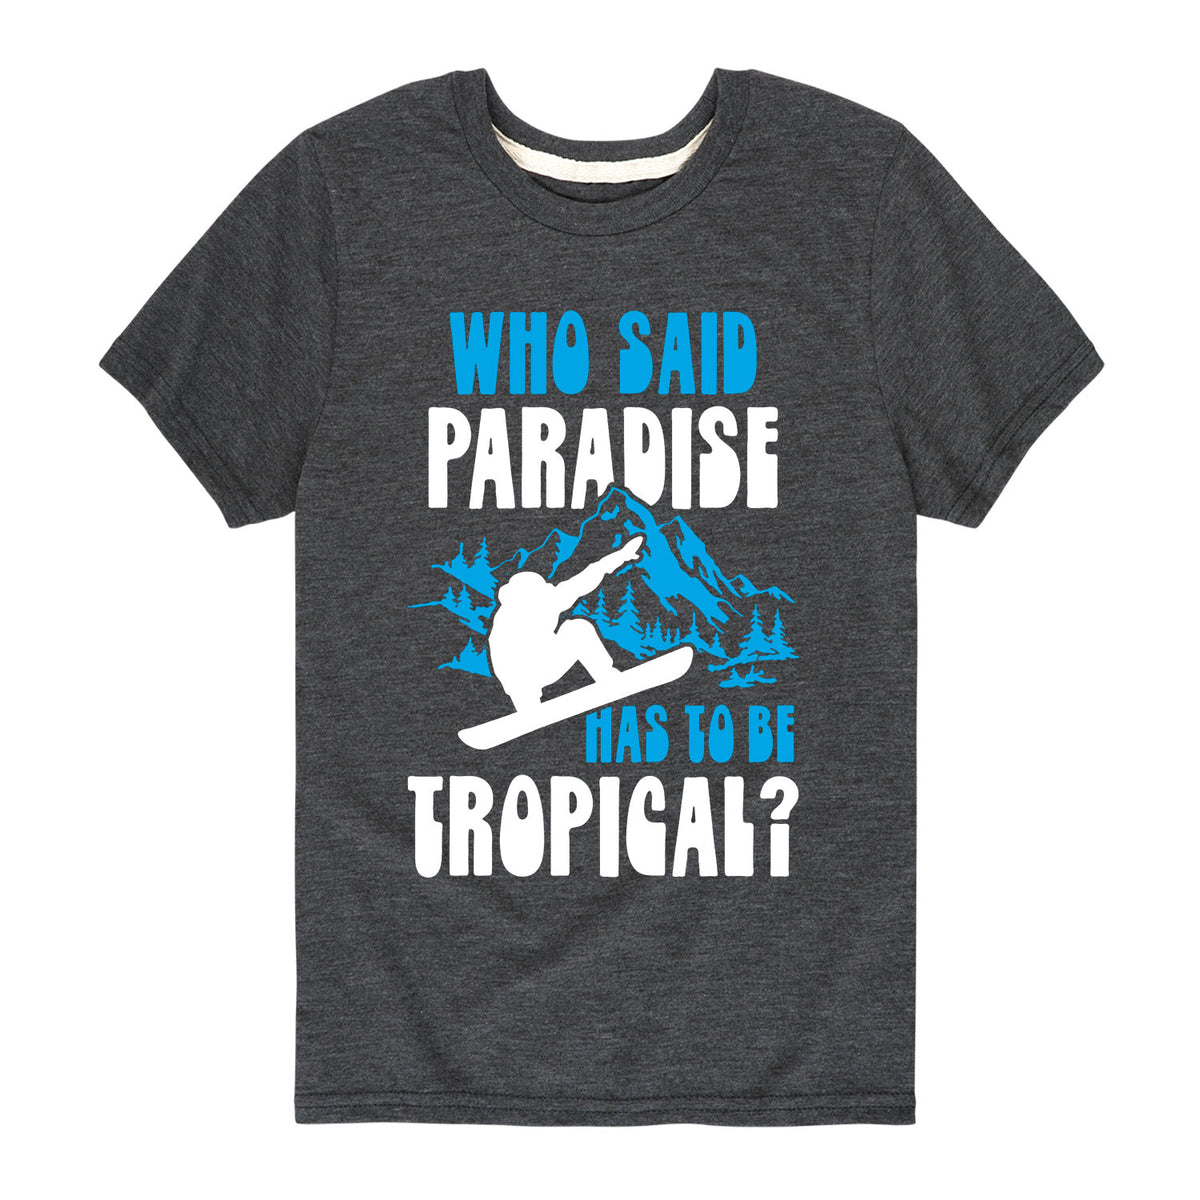 Who Said Paradise Has To Be Tropical - Youth & Toddler Short Sleeve T-Shirt